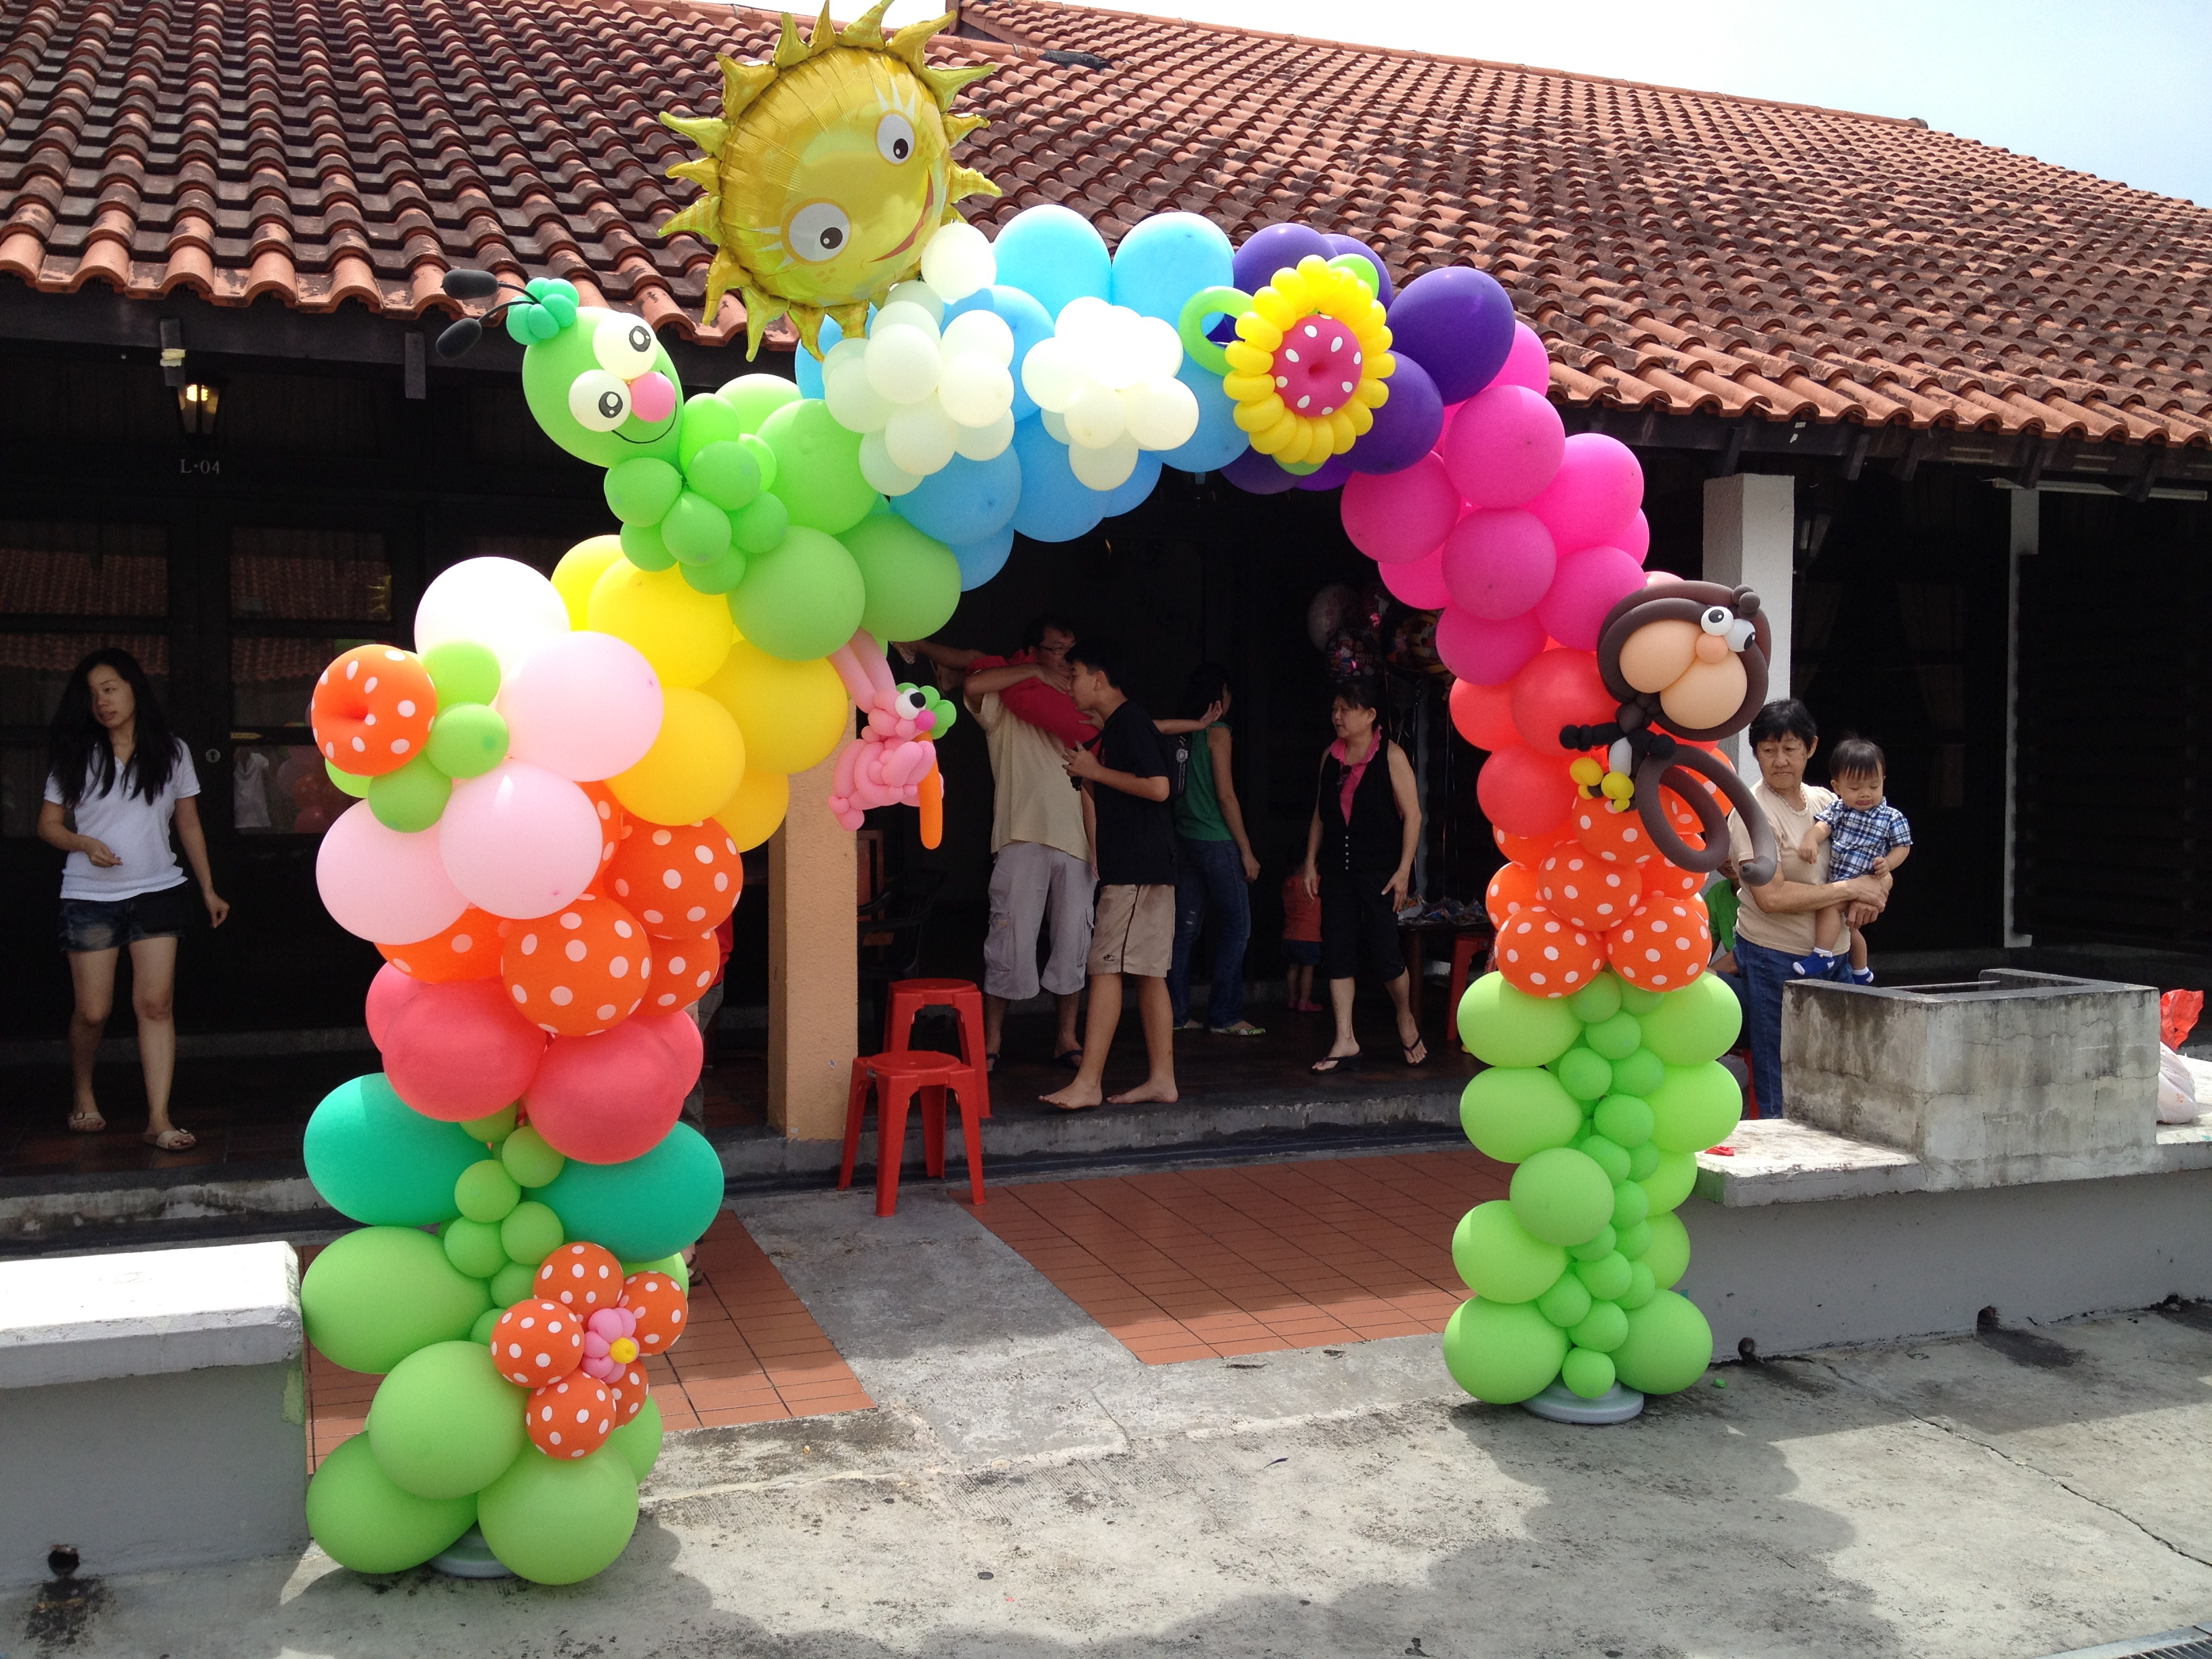 singapore customised balloon arch that balloons